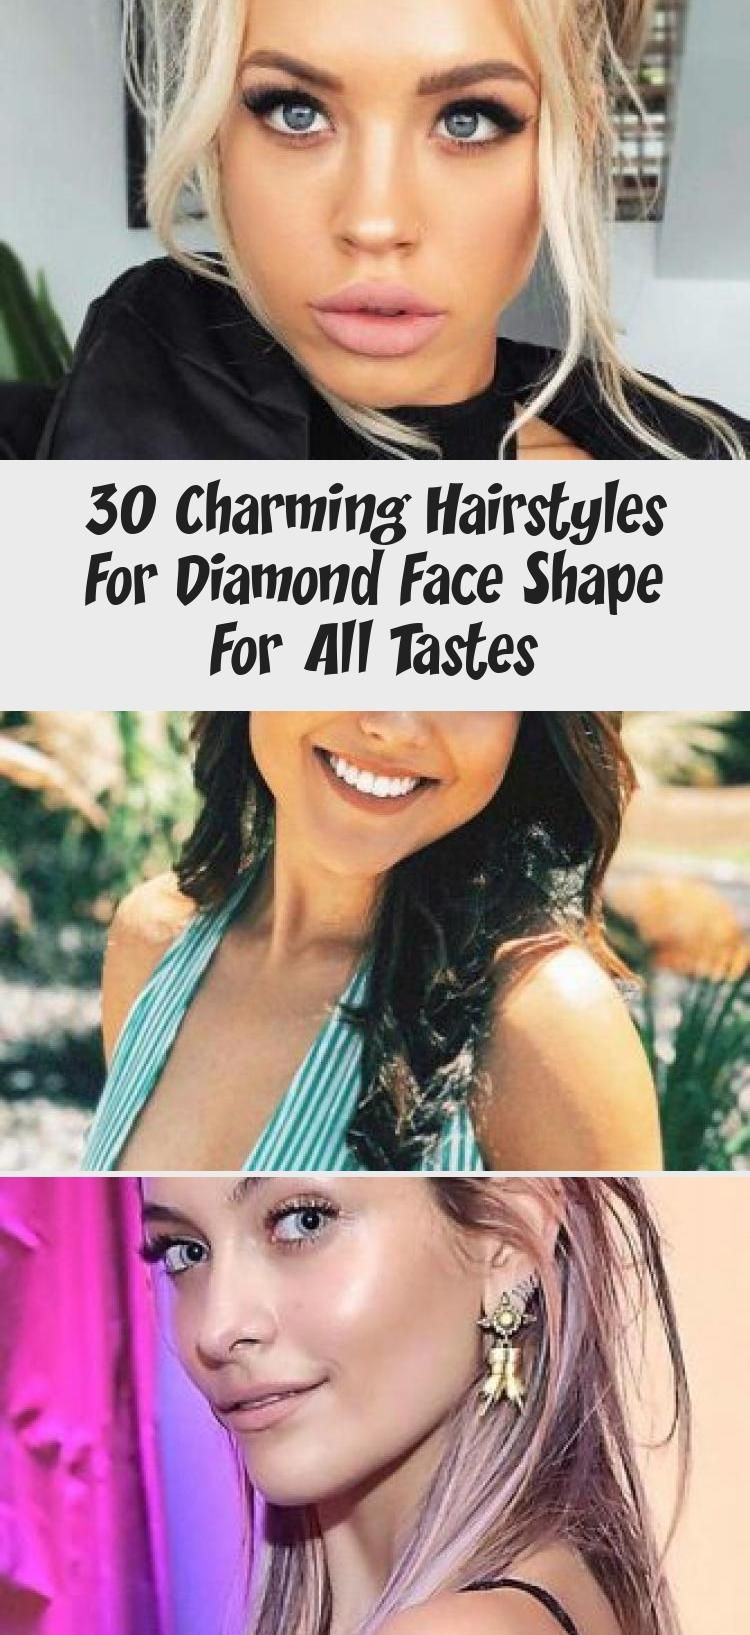 30 charming hairstyles for diamond face shape for all